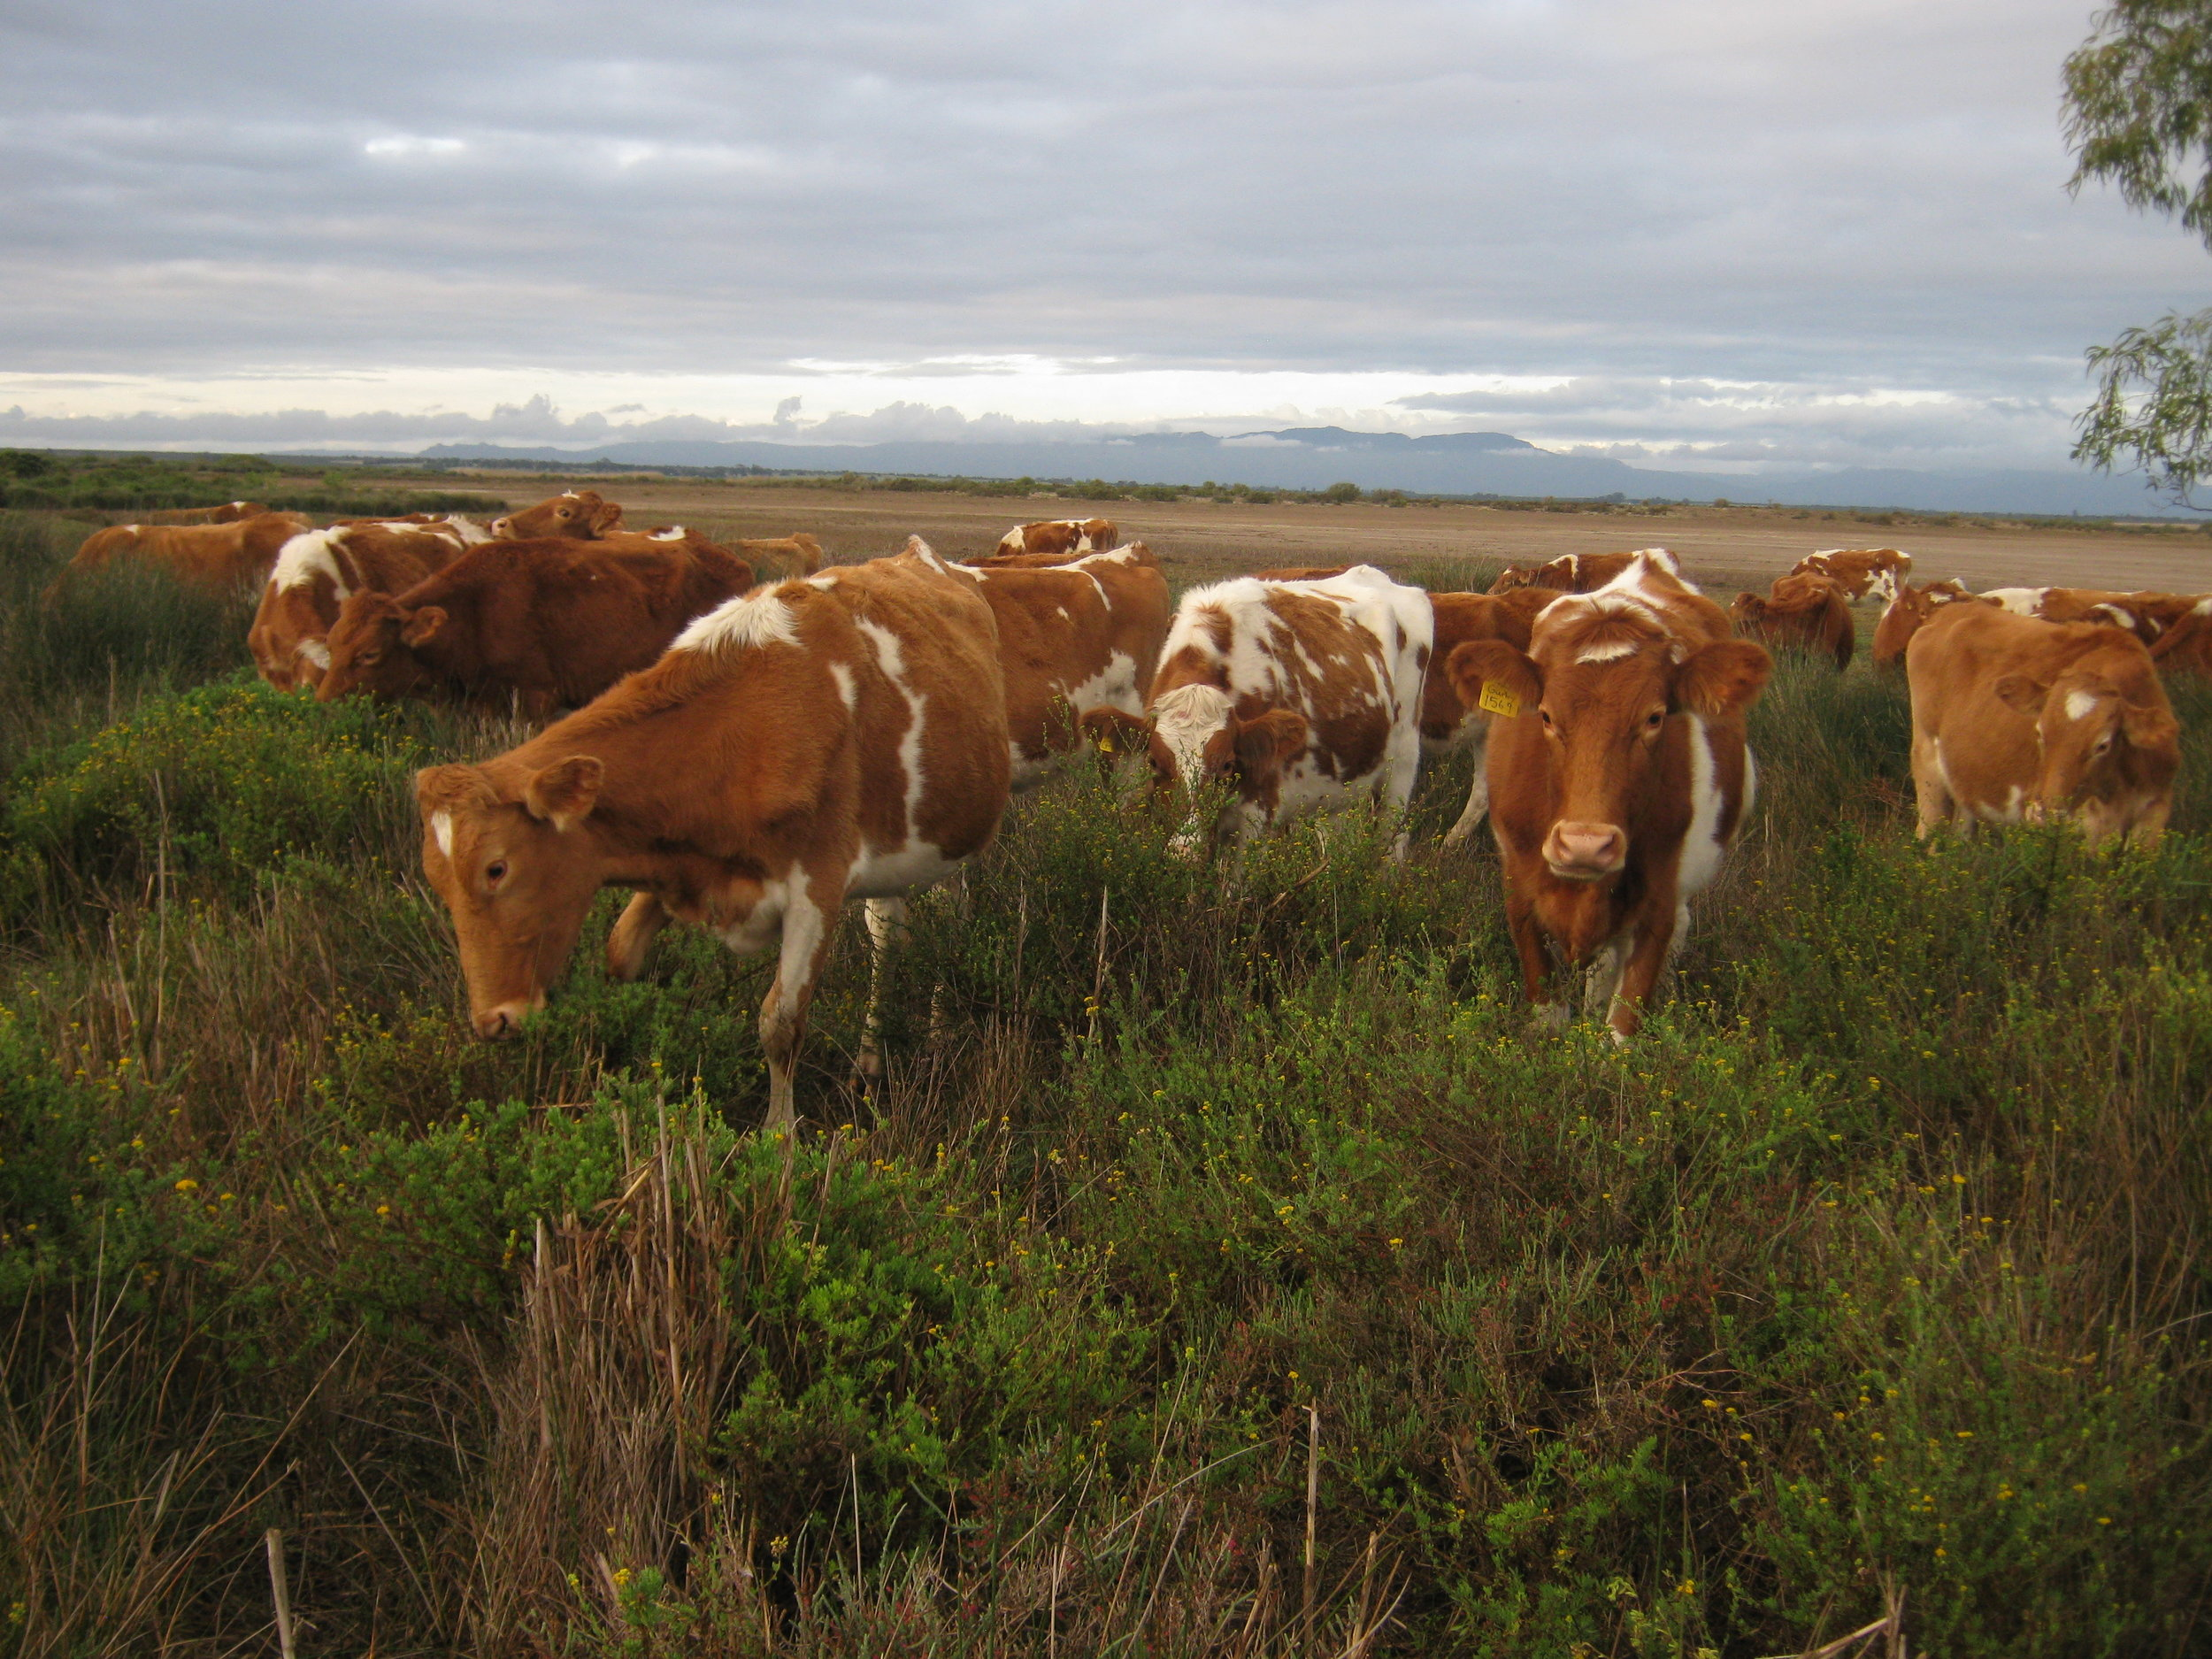 Guernsey heifers in South Africa in the middle of a drought